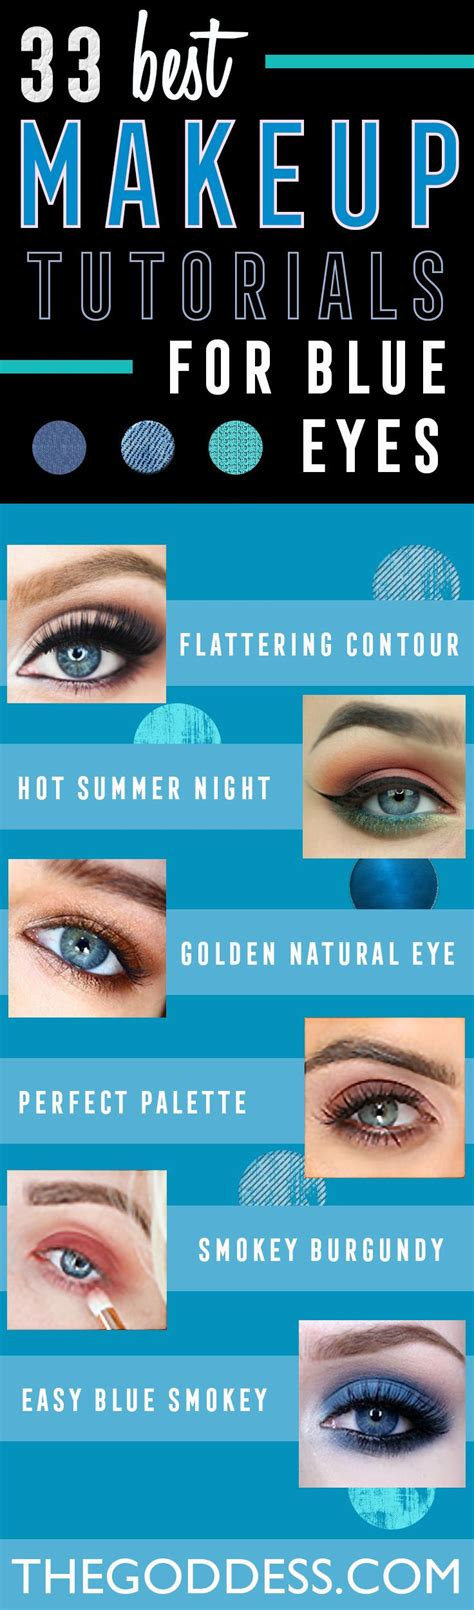 step by step natural hair guide makeup tutorials for blue eyes easy step by step